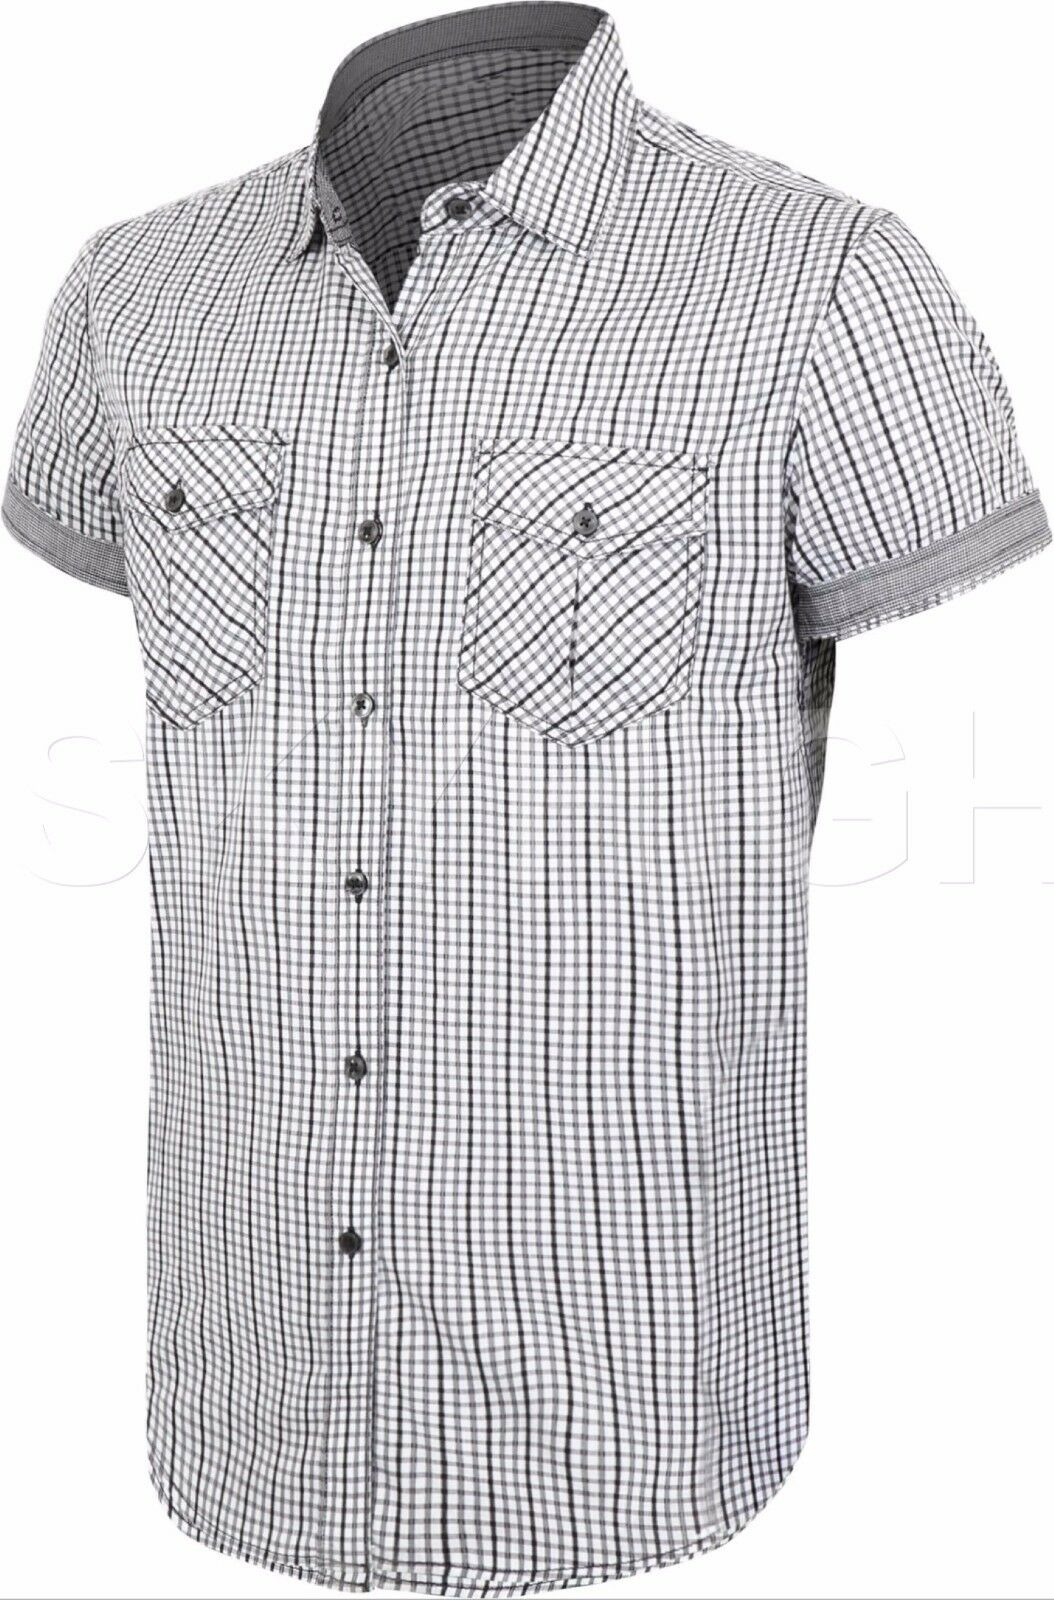 Mens BUTTON DOWN SHORT SLEEVE Tee Western T Shirts Summer Casual Top Collared